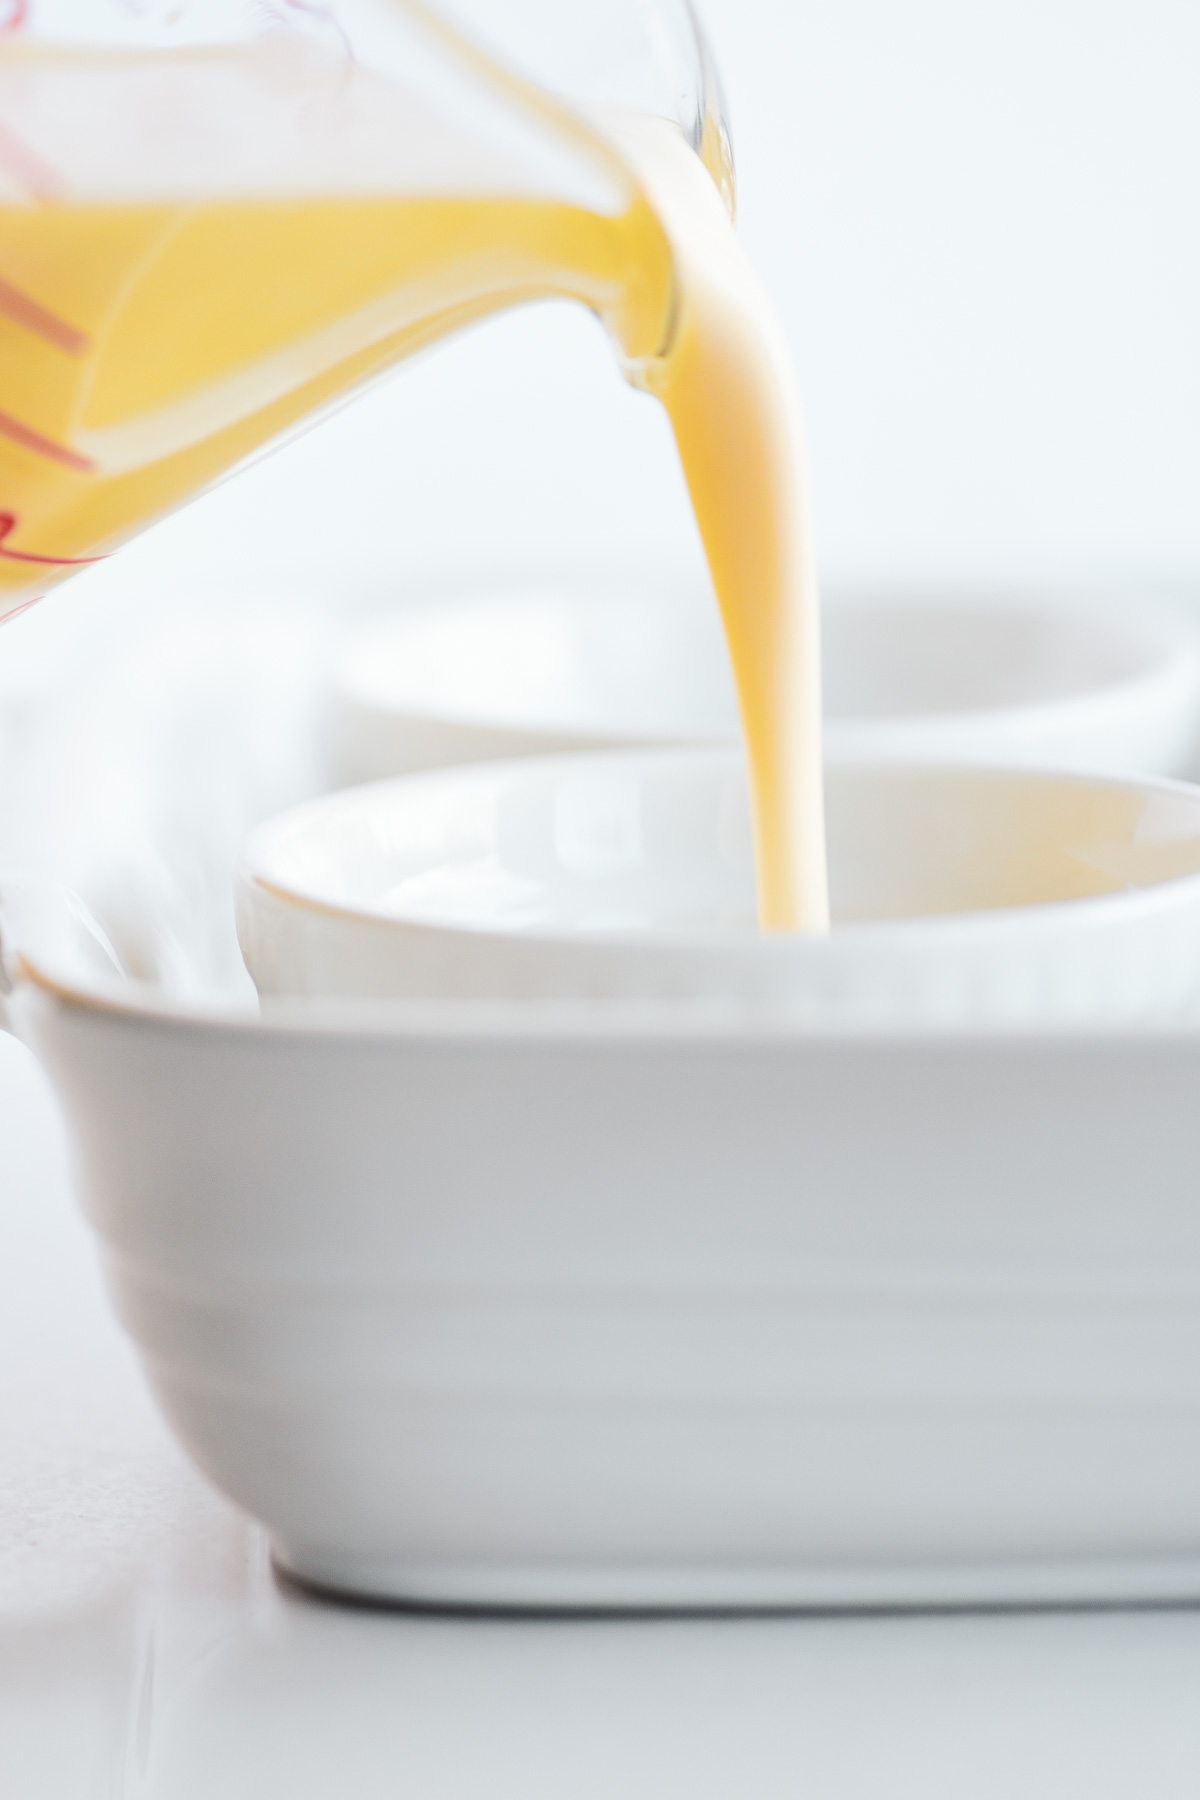 pouring custard batter into small custard cups